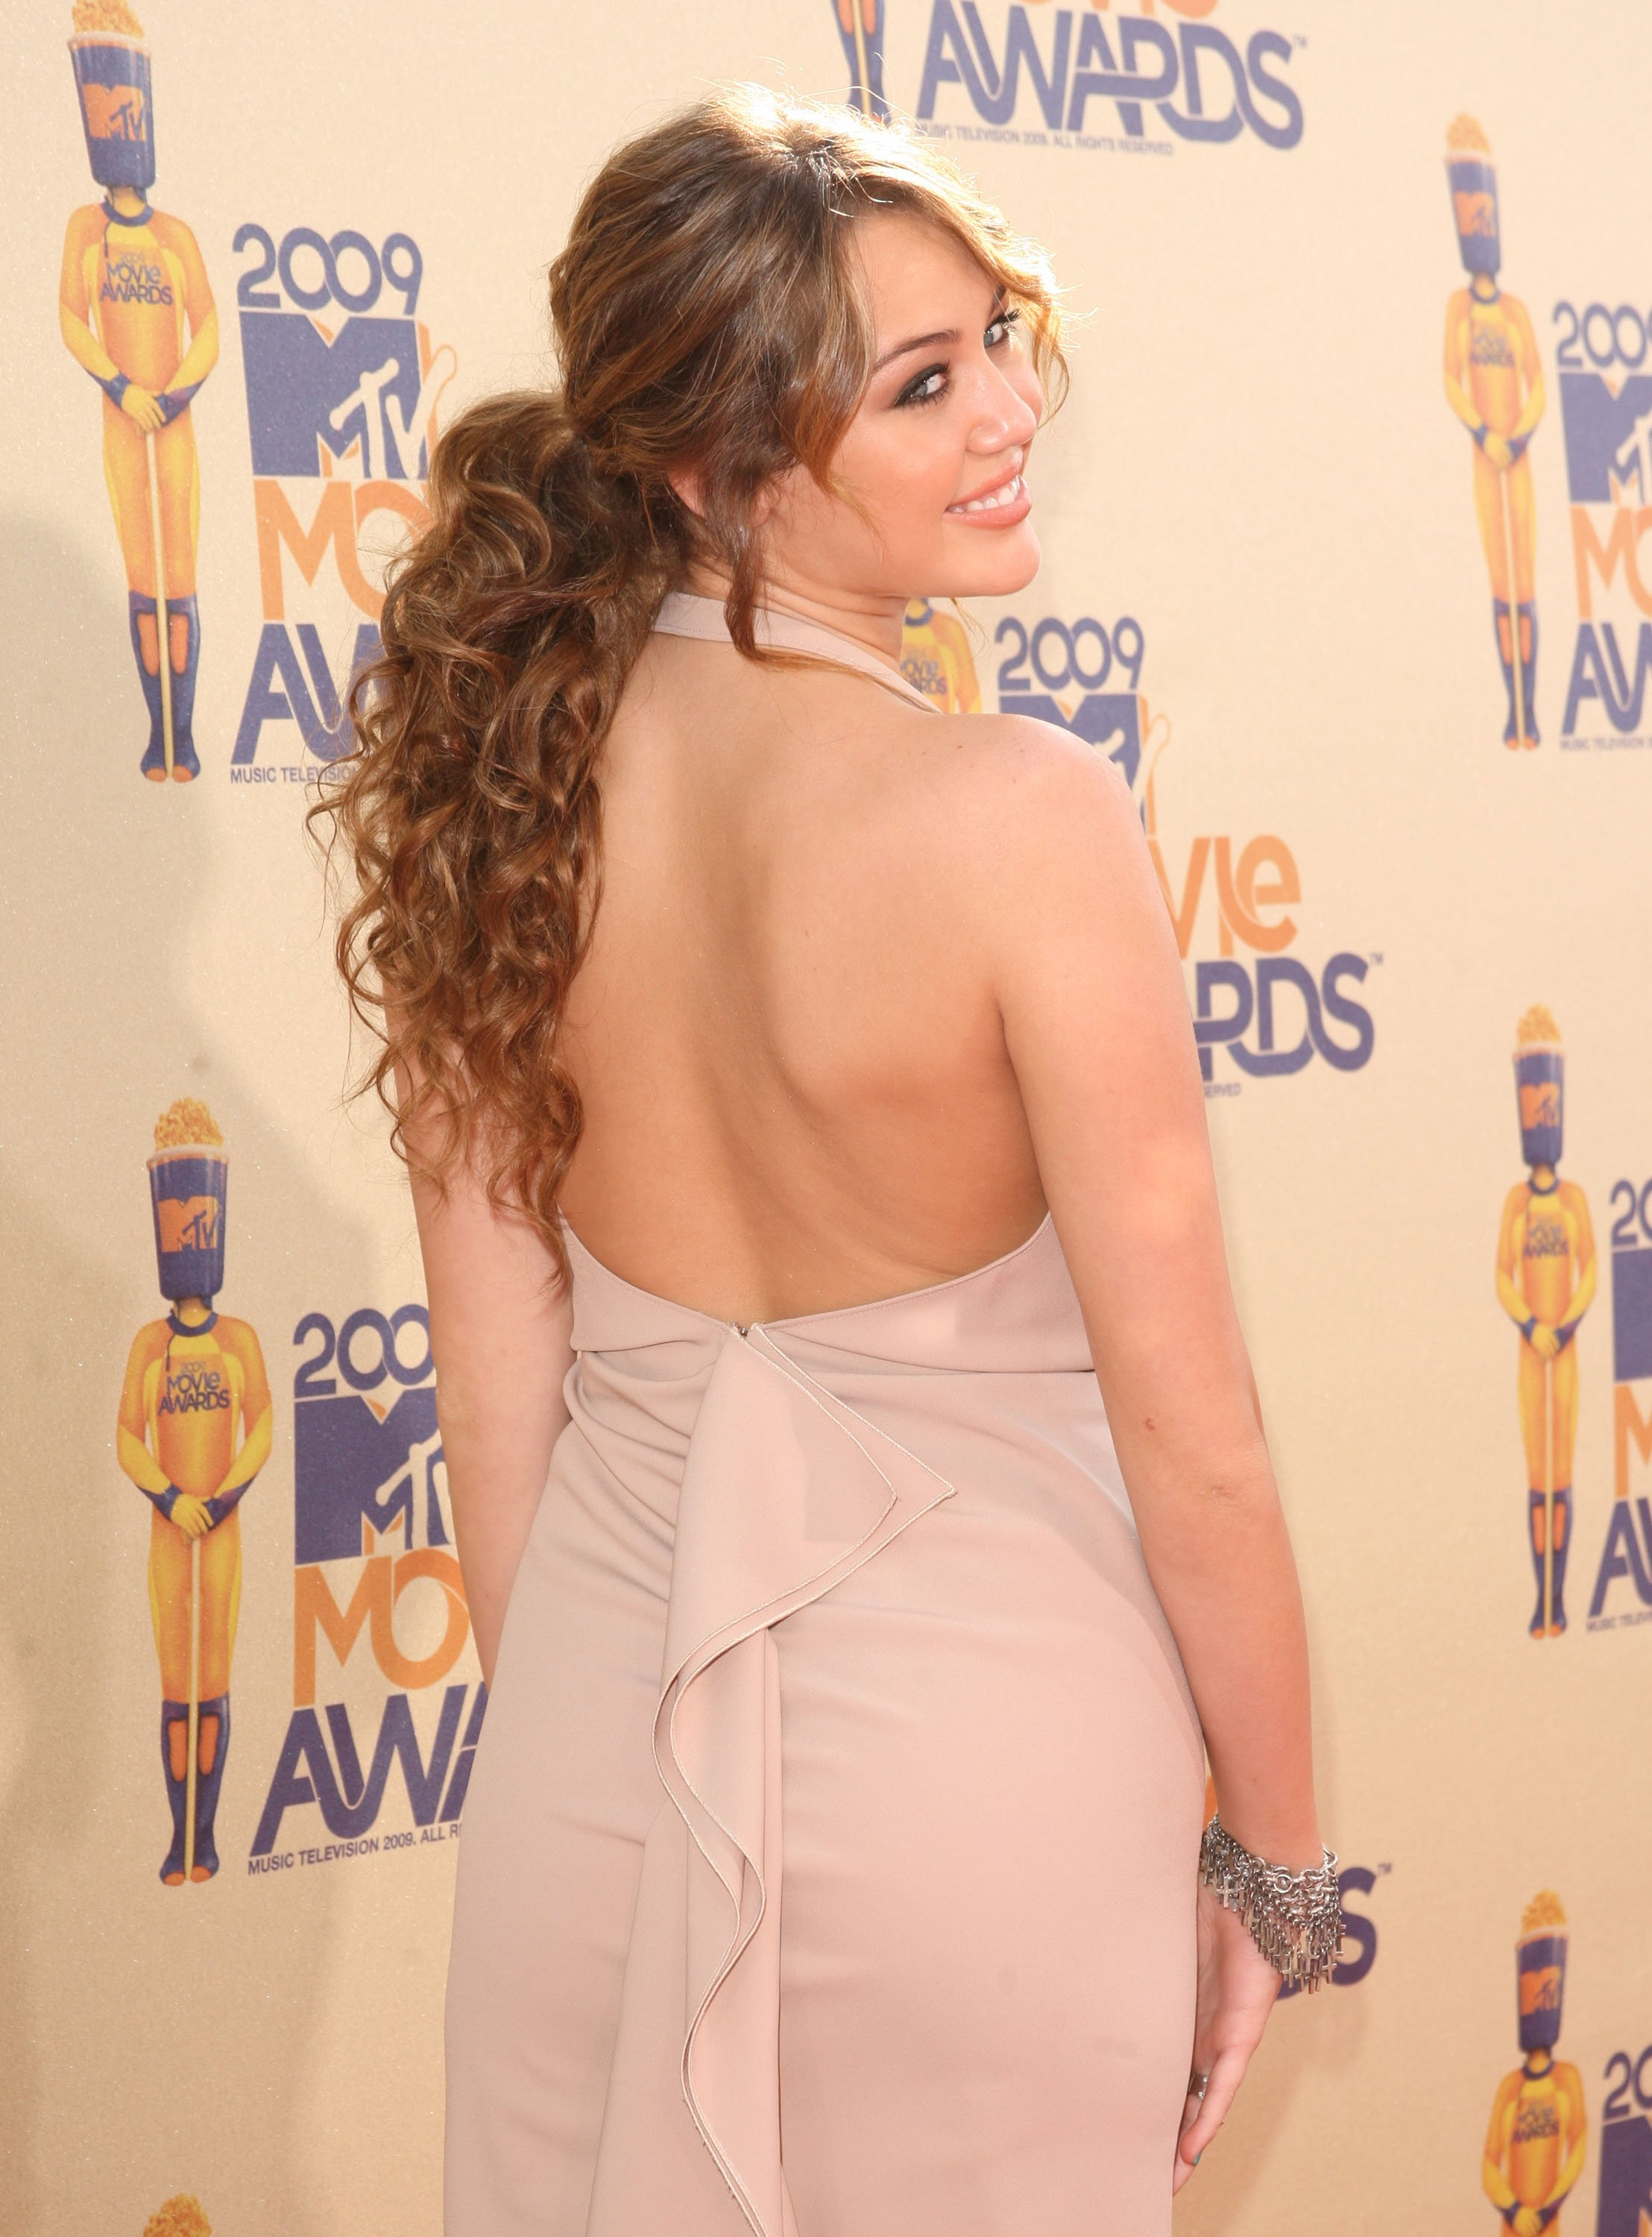 23701_Celebutopia-Miley_Cyrus_arrives_at_the_2009_MTV_Movie_Awards-13_122_427lo.jpg